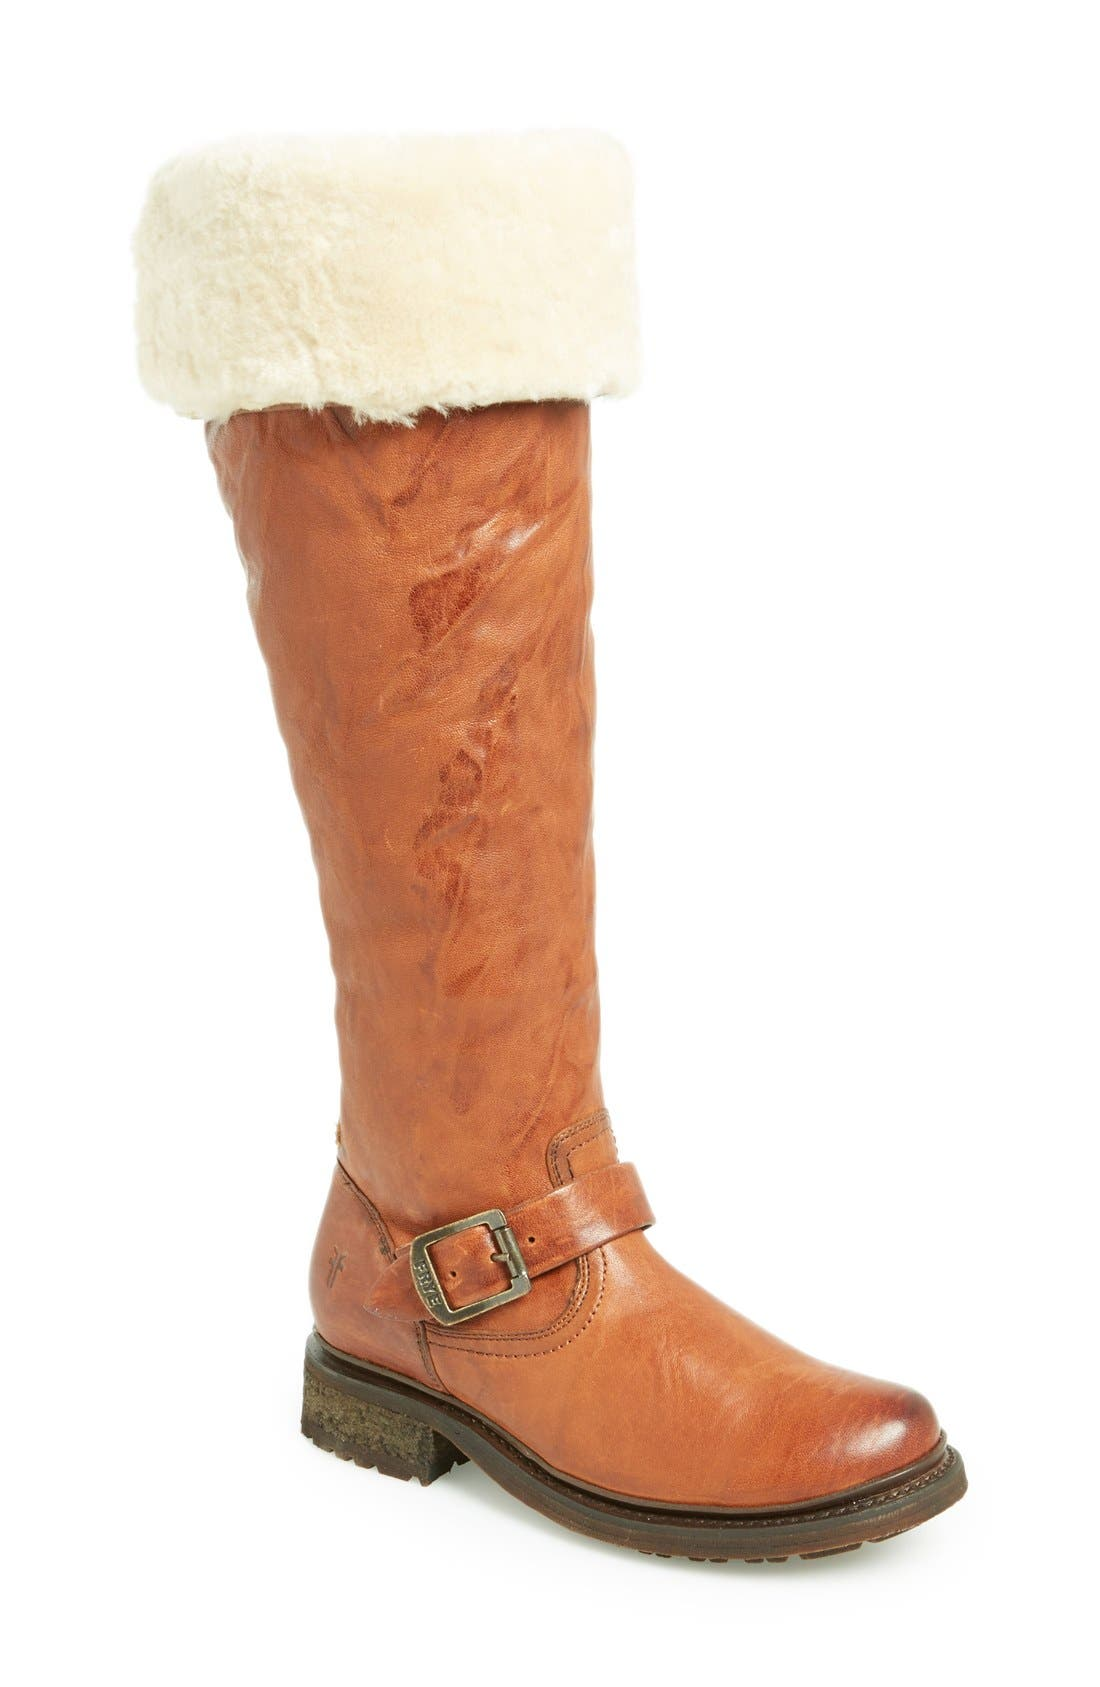 Alternate Image 1 Selected - Frye 'Valerie' Cuff Over the Knee Boot (Women)